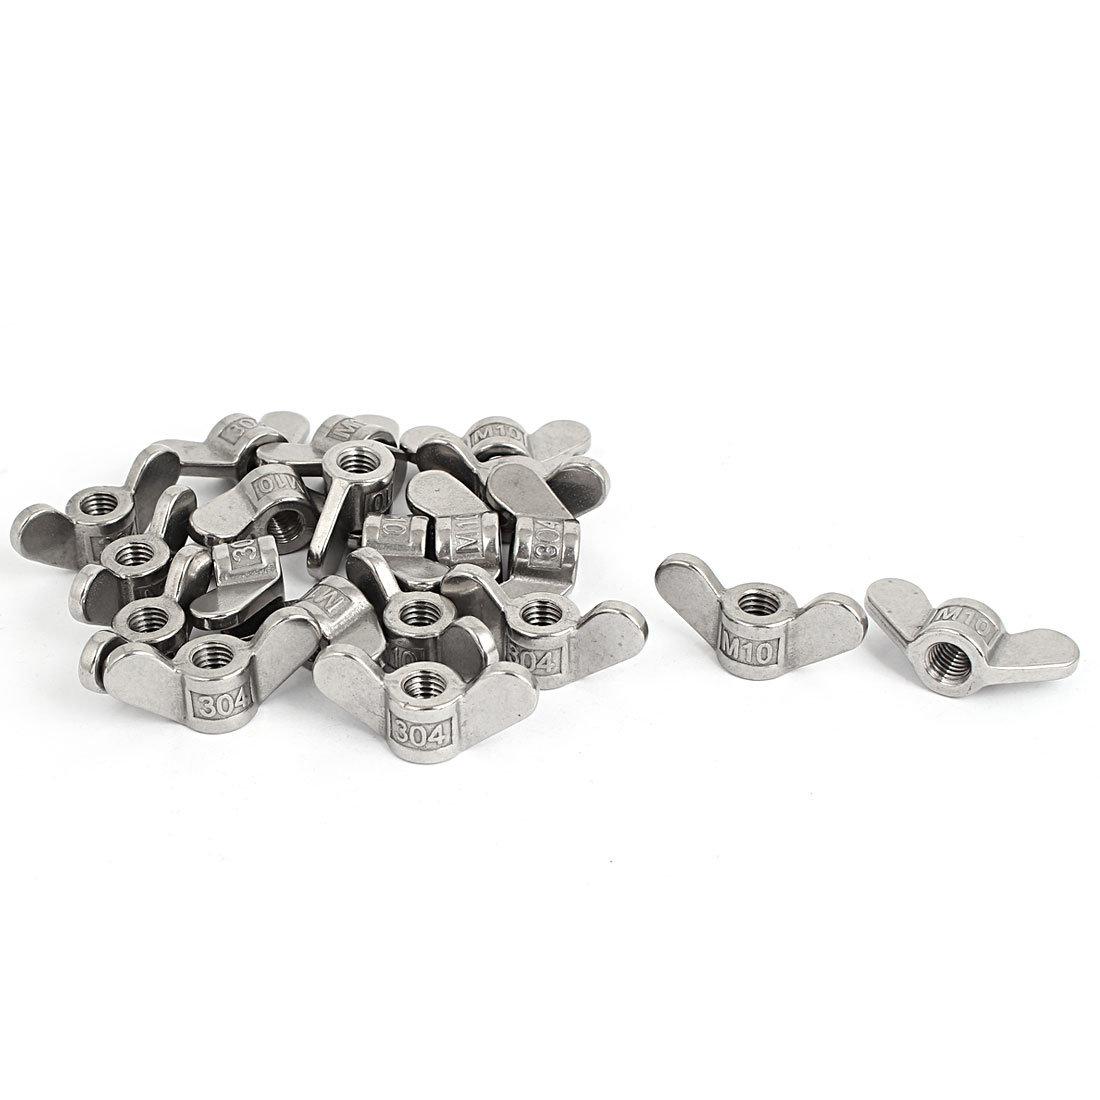 M10 304 Stainless Steel Butterfly Wing Nut Screw Silver Tone 20 Pcs